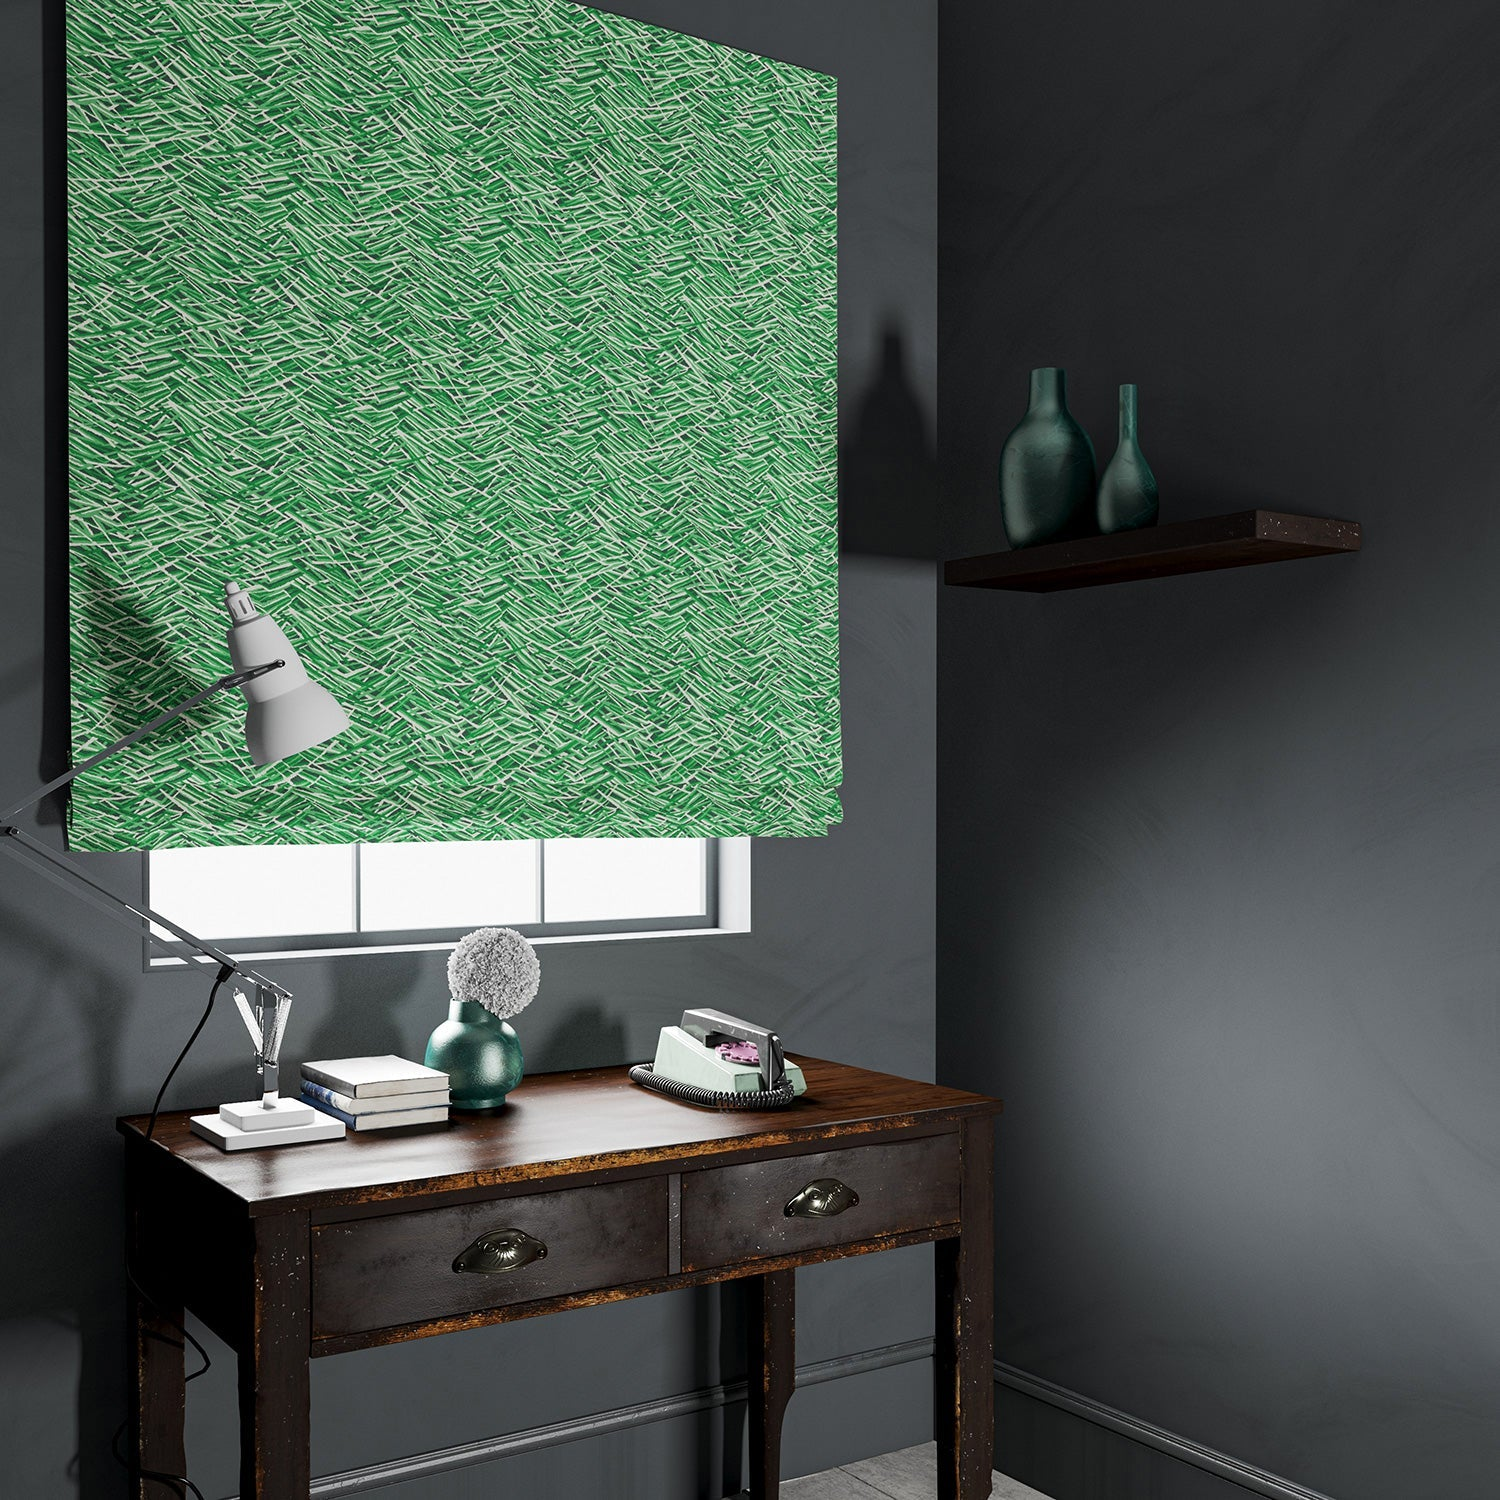 Blind in a luxury green velvet fabric with abstract design